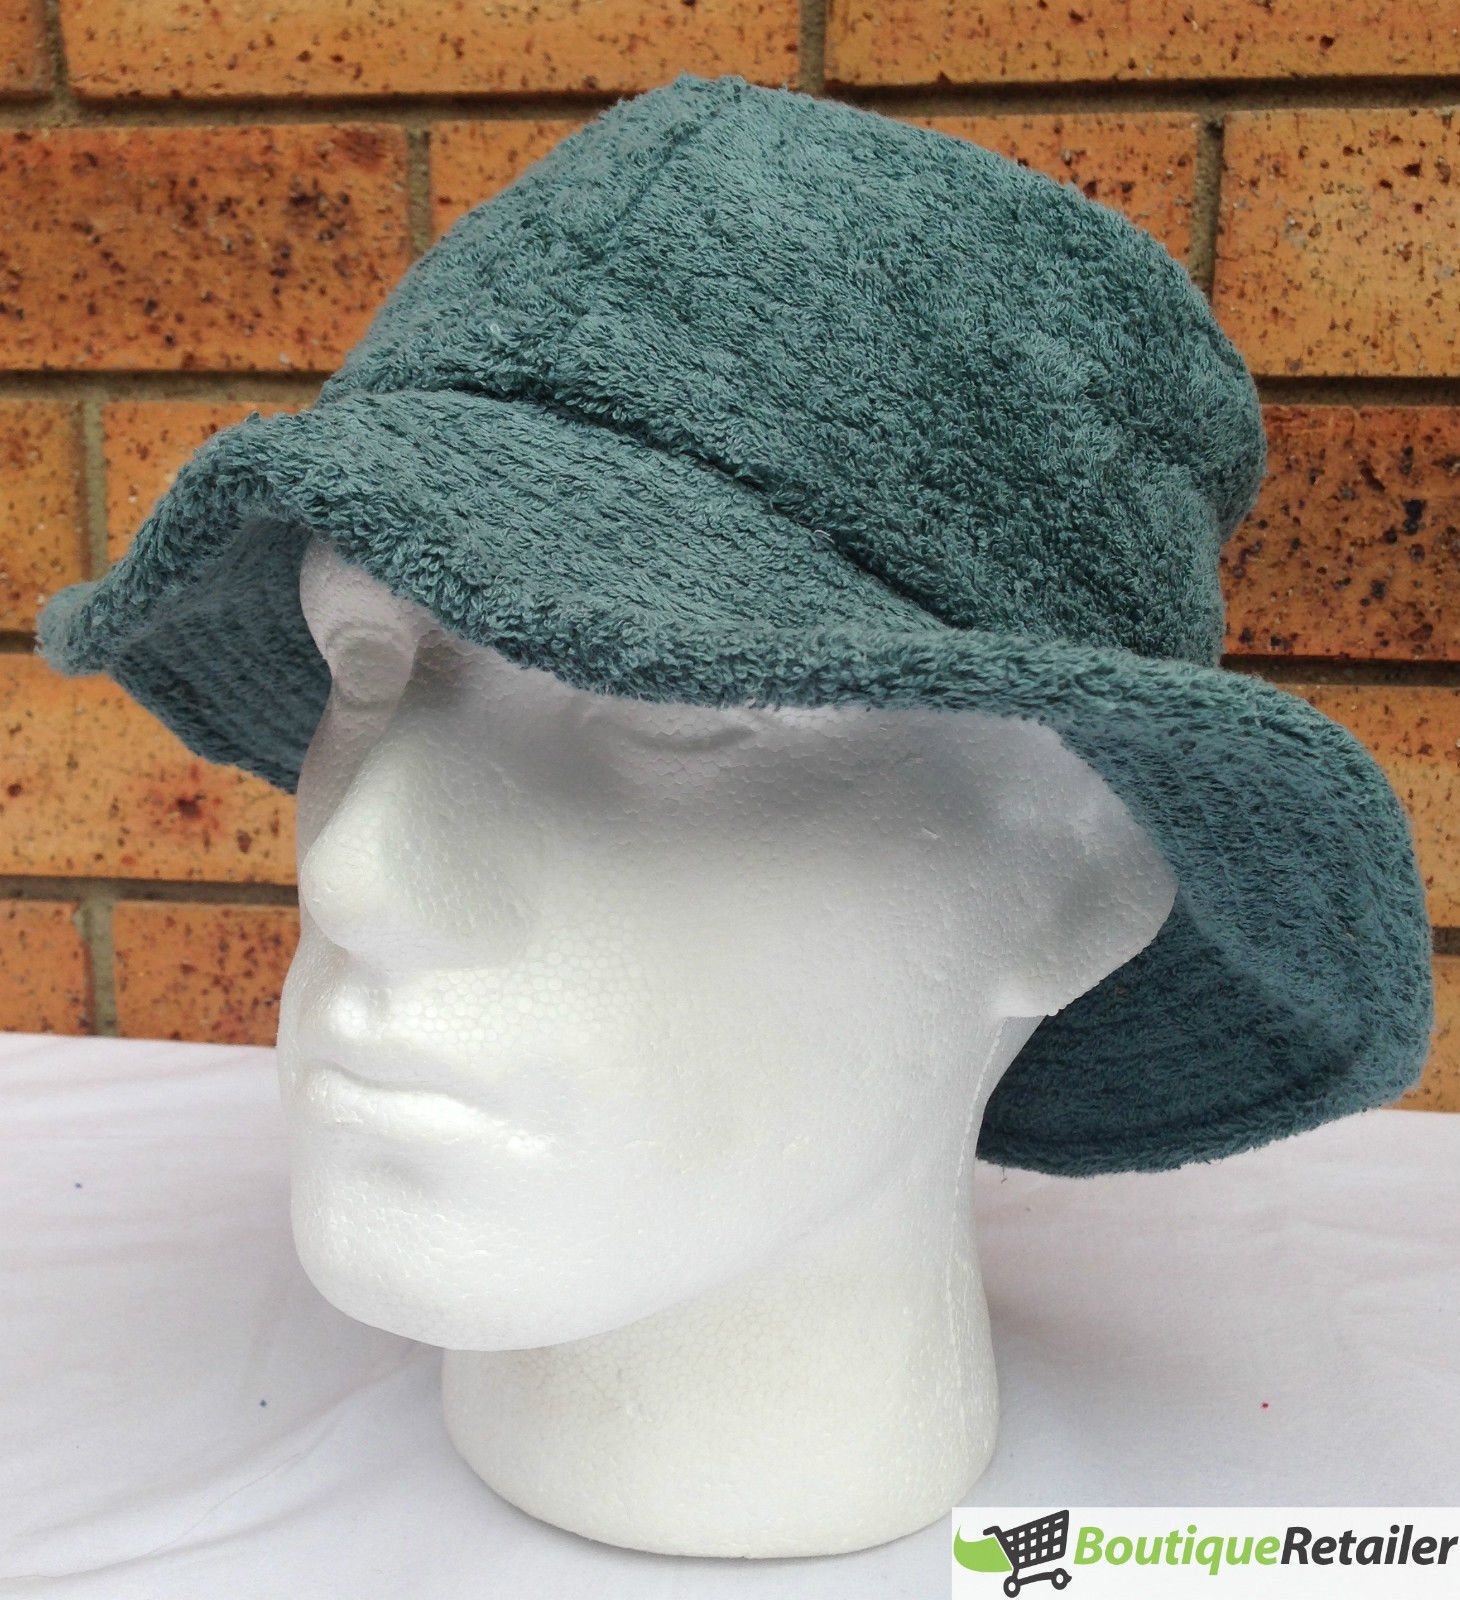 Terry-Towelling-BUCKET-HAT-Daggy-Fishing-Camping-Lad-Cap-Retro-New-100-COTTON thumbnail 83